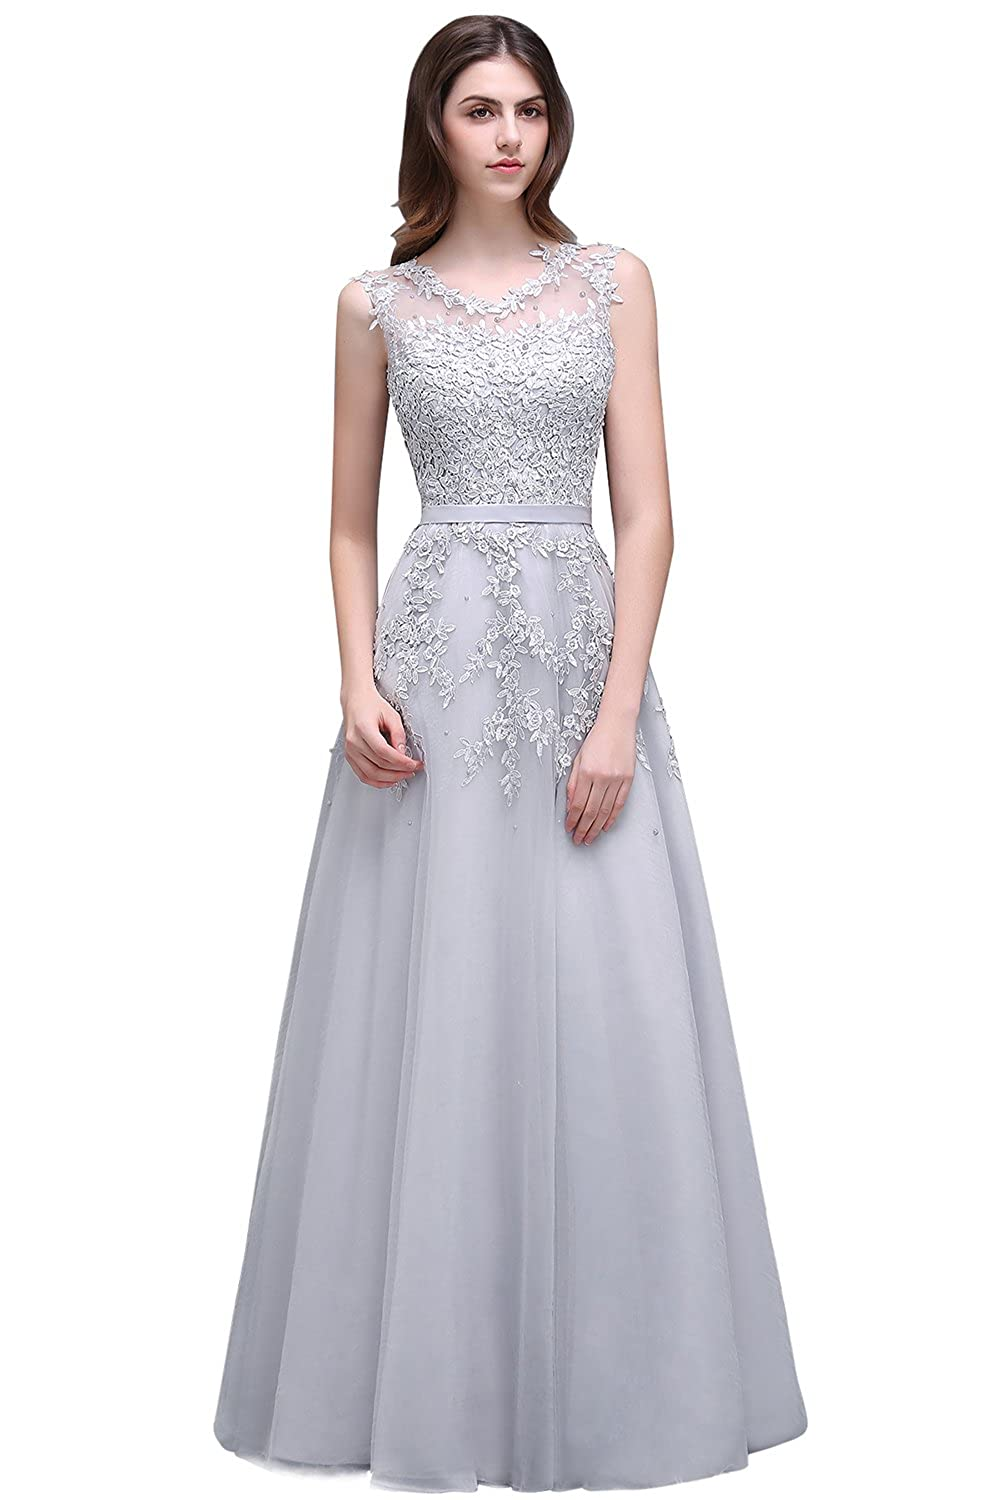 1eaaa5923ec Features A Line Style Sleeveless Lace Appliques Floor Length Women s Beaded  Sleeveless Long Prom Dresses Formal Lace Evening Gowns